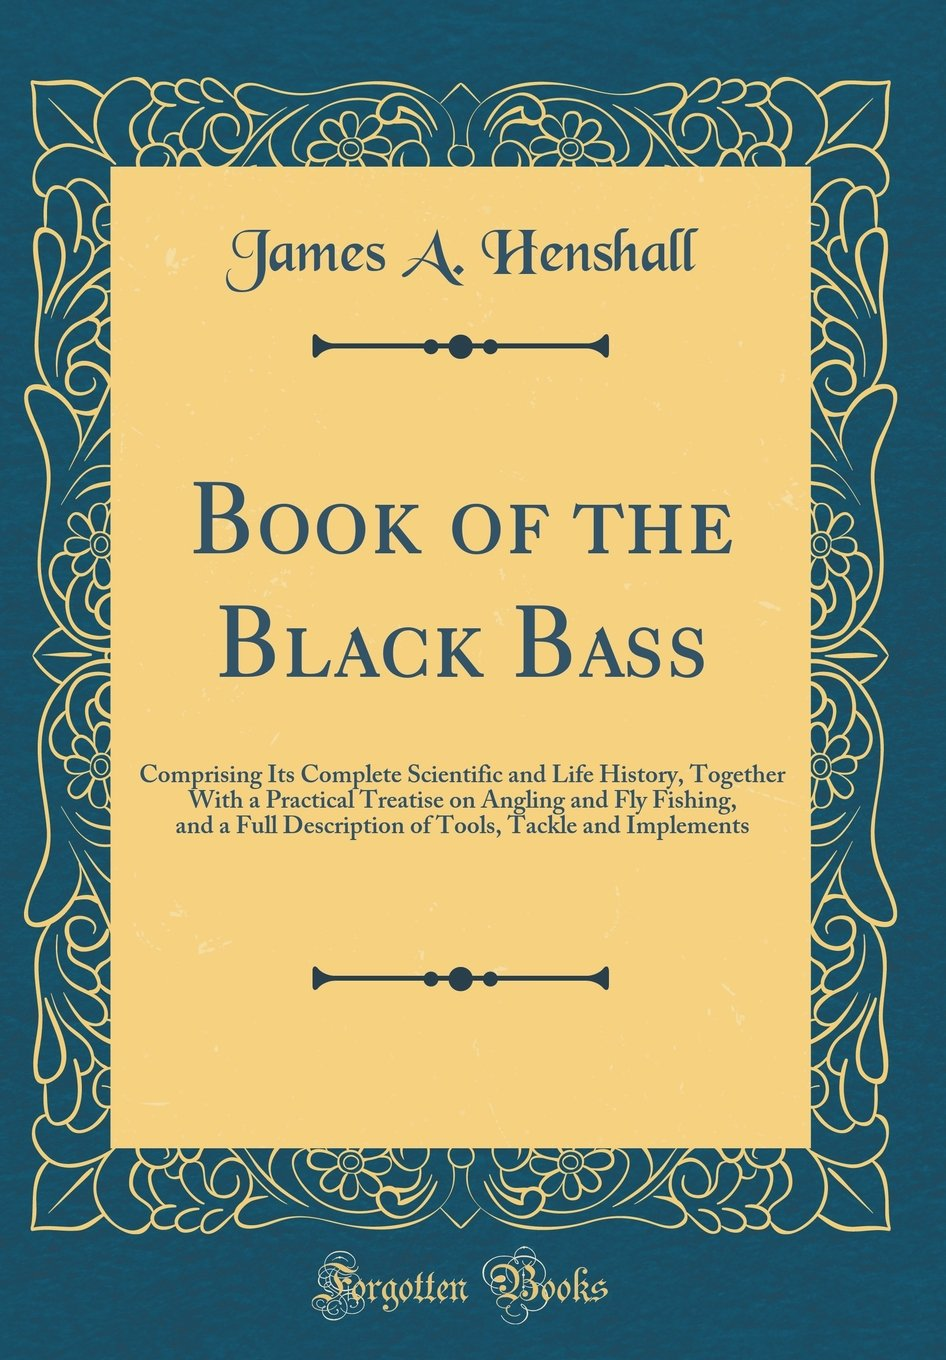 Book of the Black Bass: Comprising Its Complete Scientific and Life History, Together With a Practical Treatise on Angling and Fly Fishing, and a Full ... Tackle and Implements (Classic Reprint)